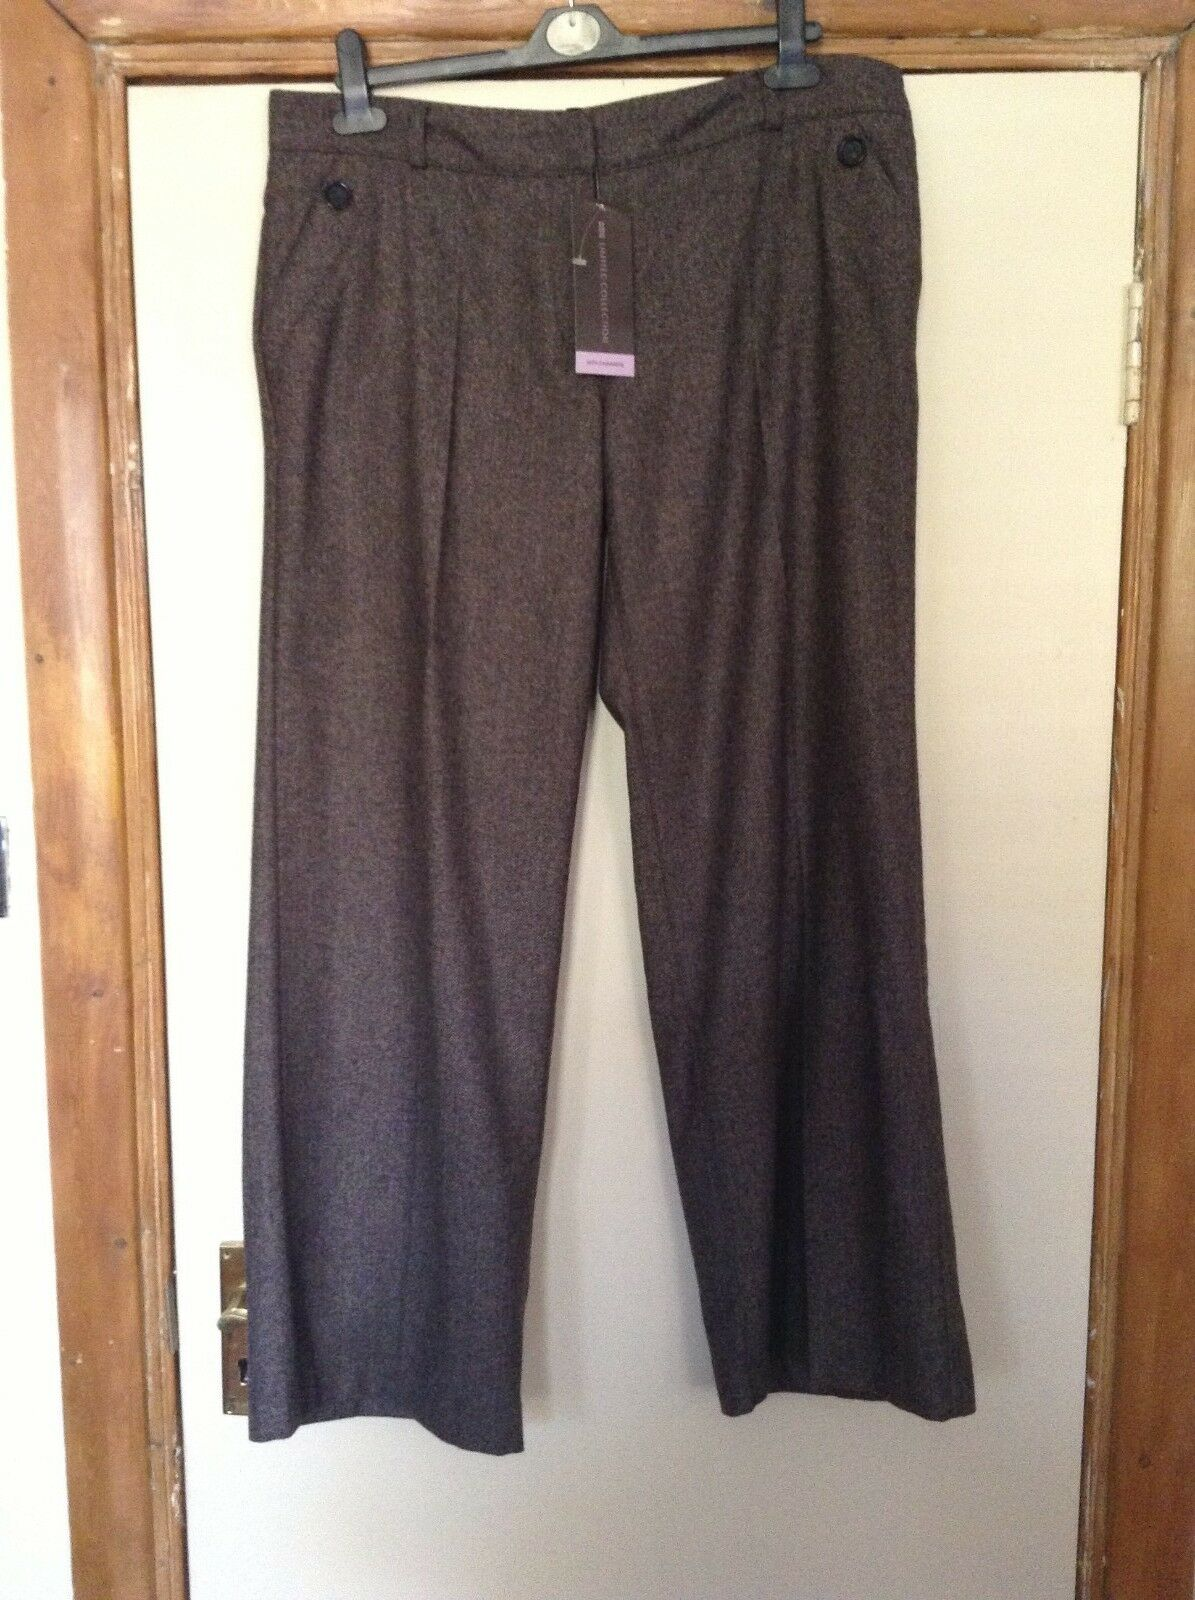 Cashmere Blend Trouser, size 16M, from Marks and Spencer